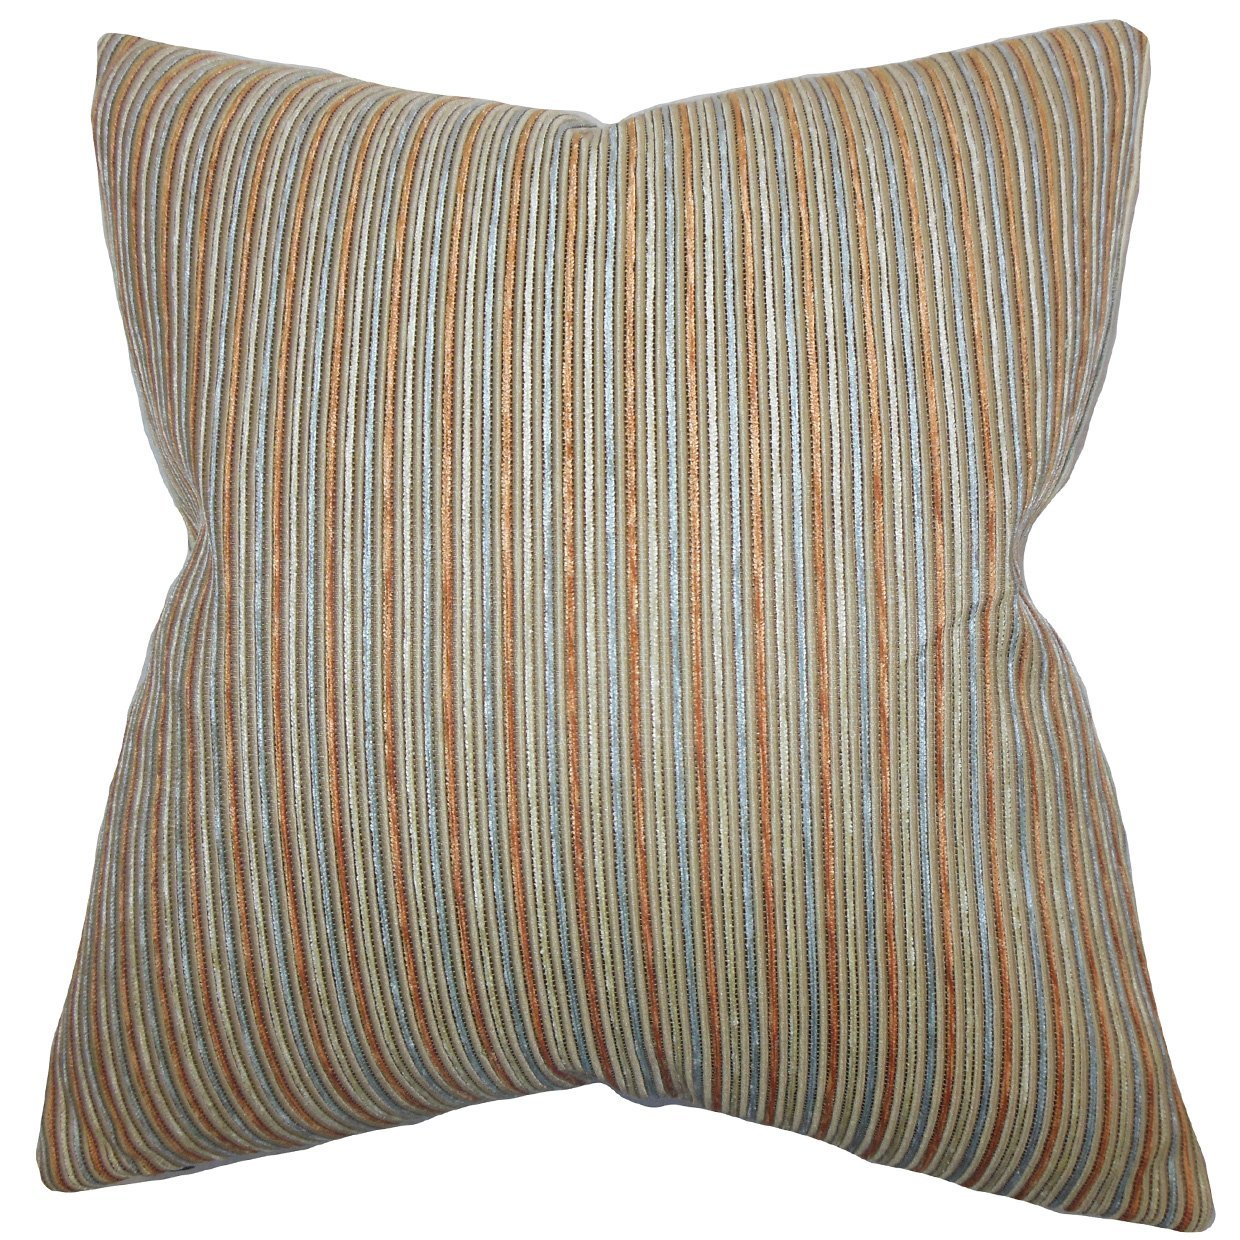 The Pillow Collection Elke Stripes Bedding Sham Brown King/20' x 36'